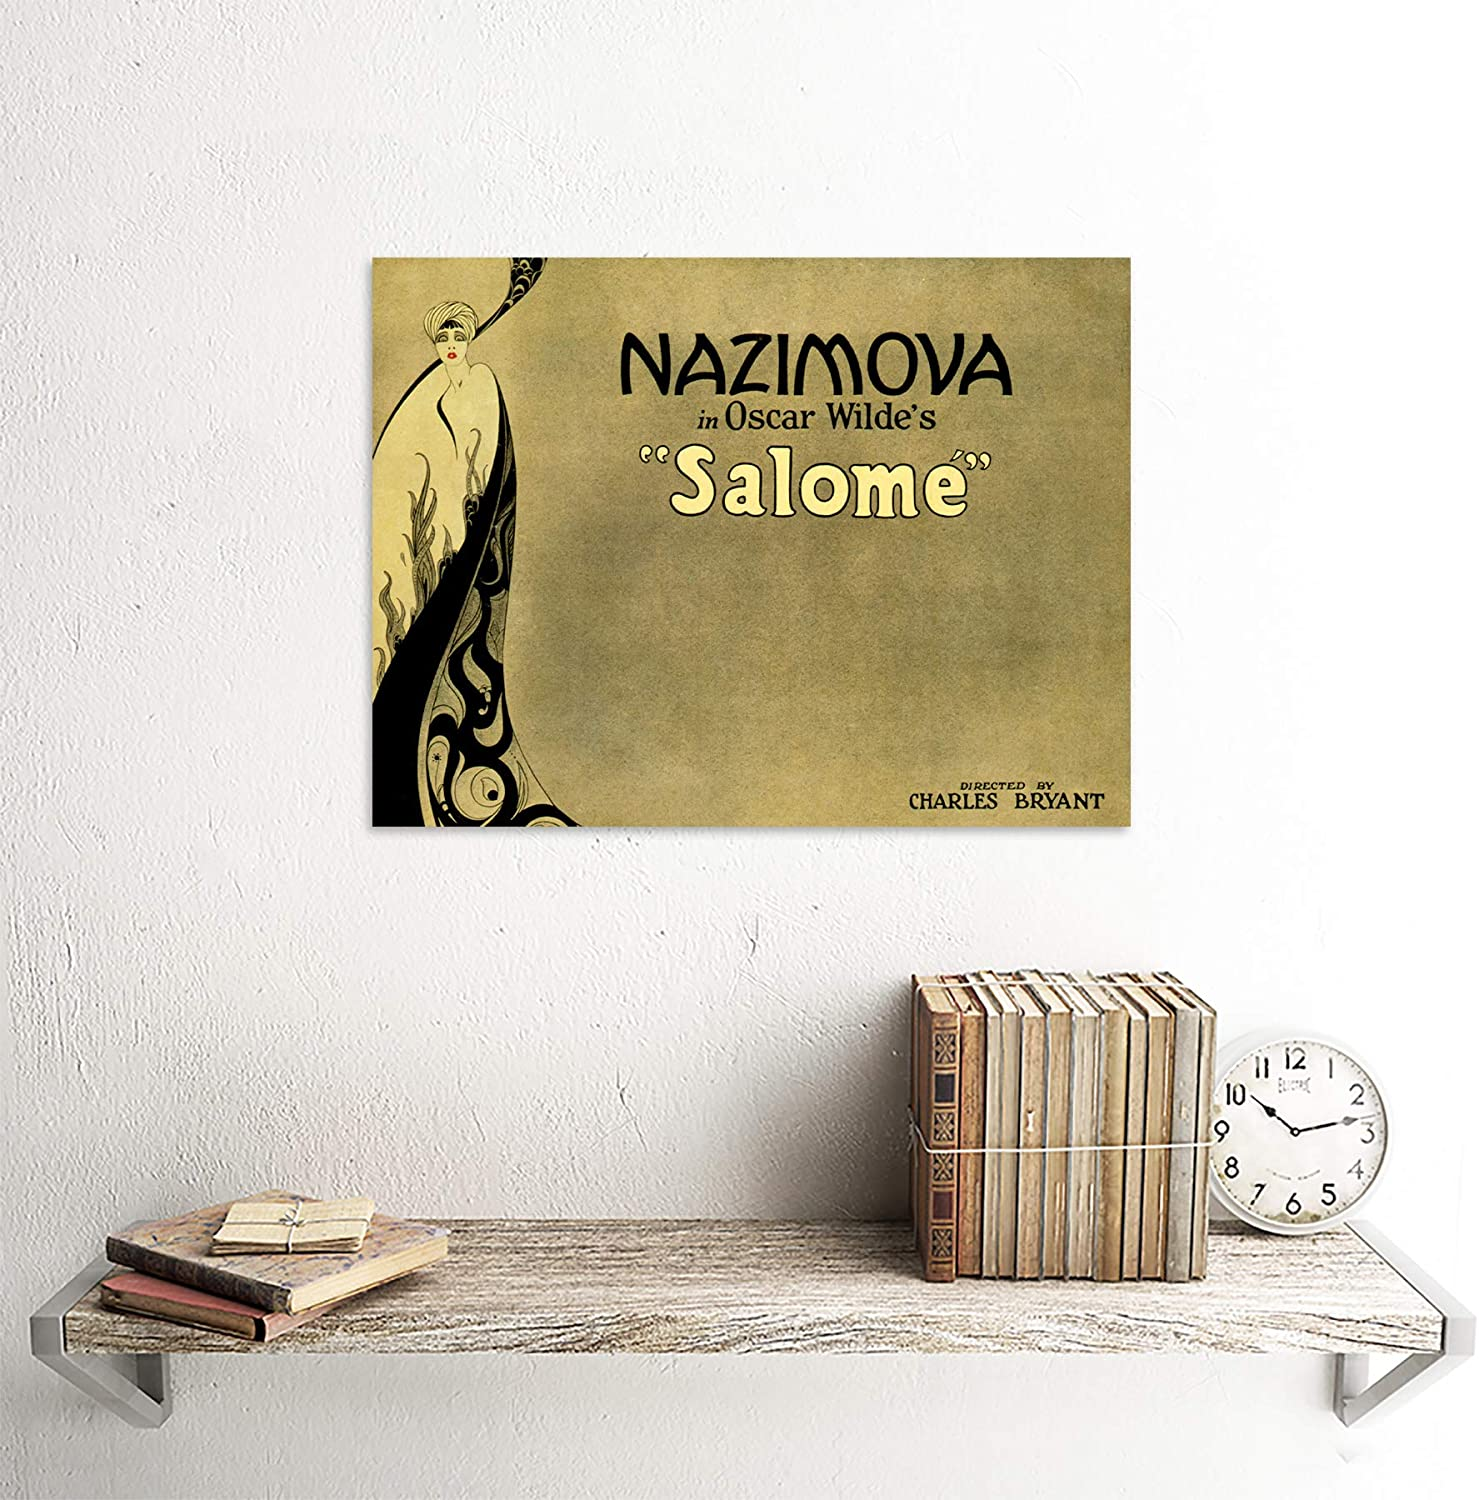 THEATRE PLAY STAGE SALOME OSCAR WILDE NAZIMOVA Poster Canvas art Prints